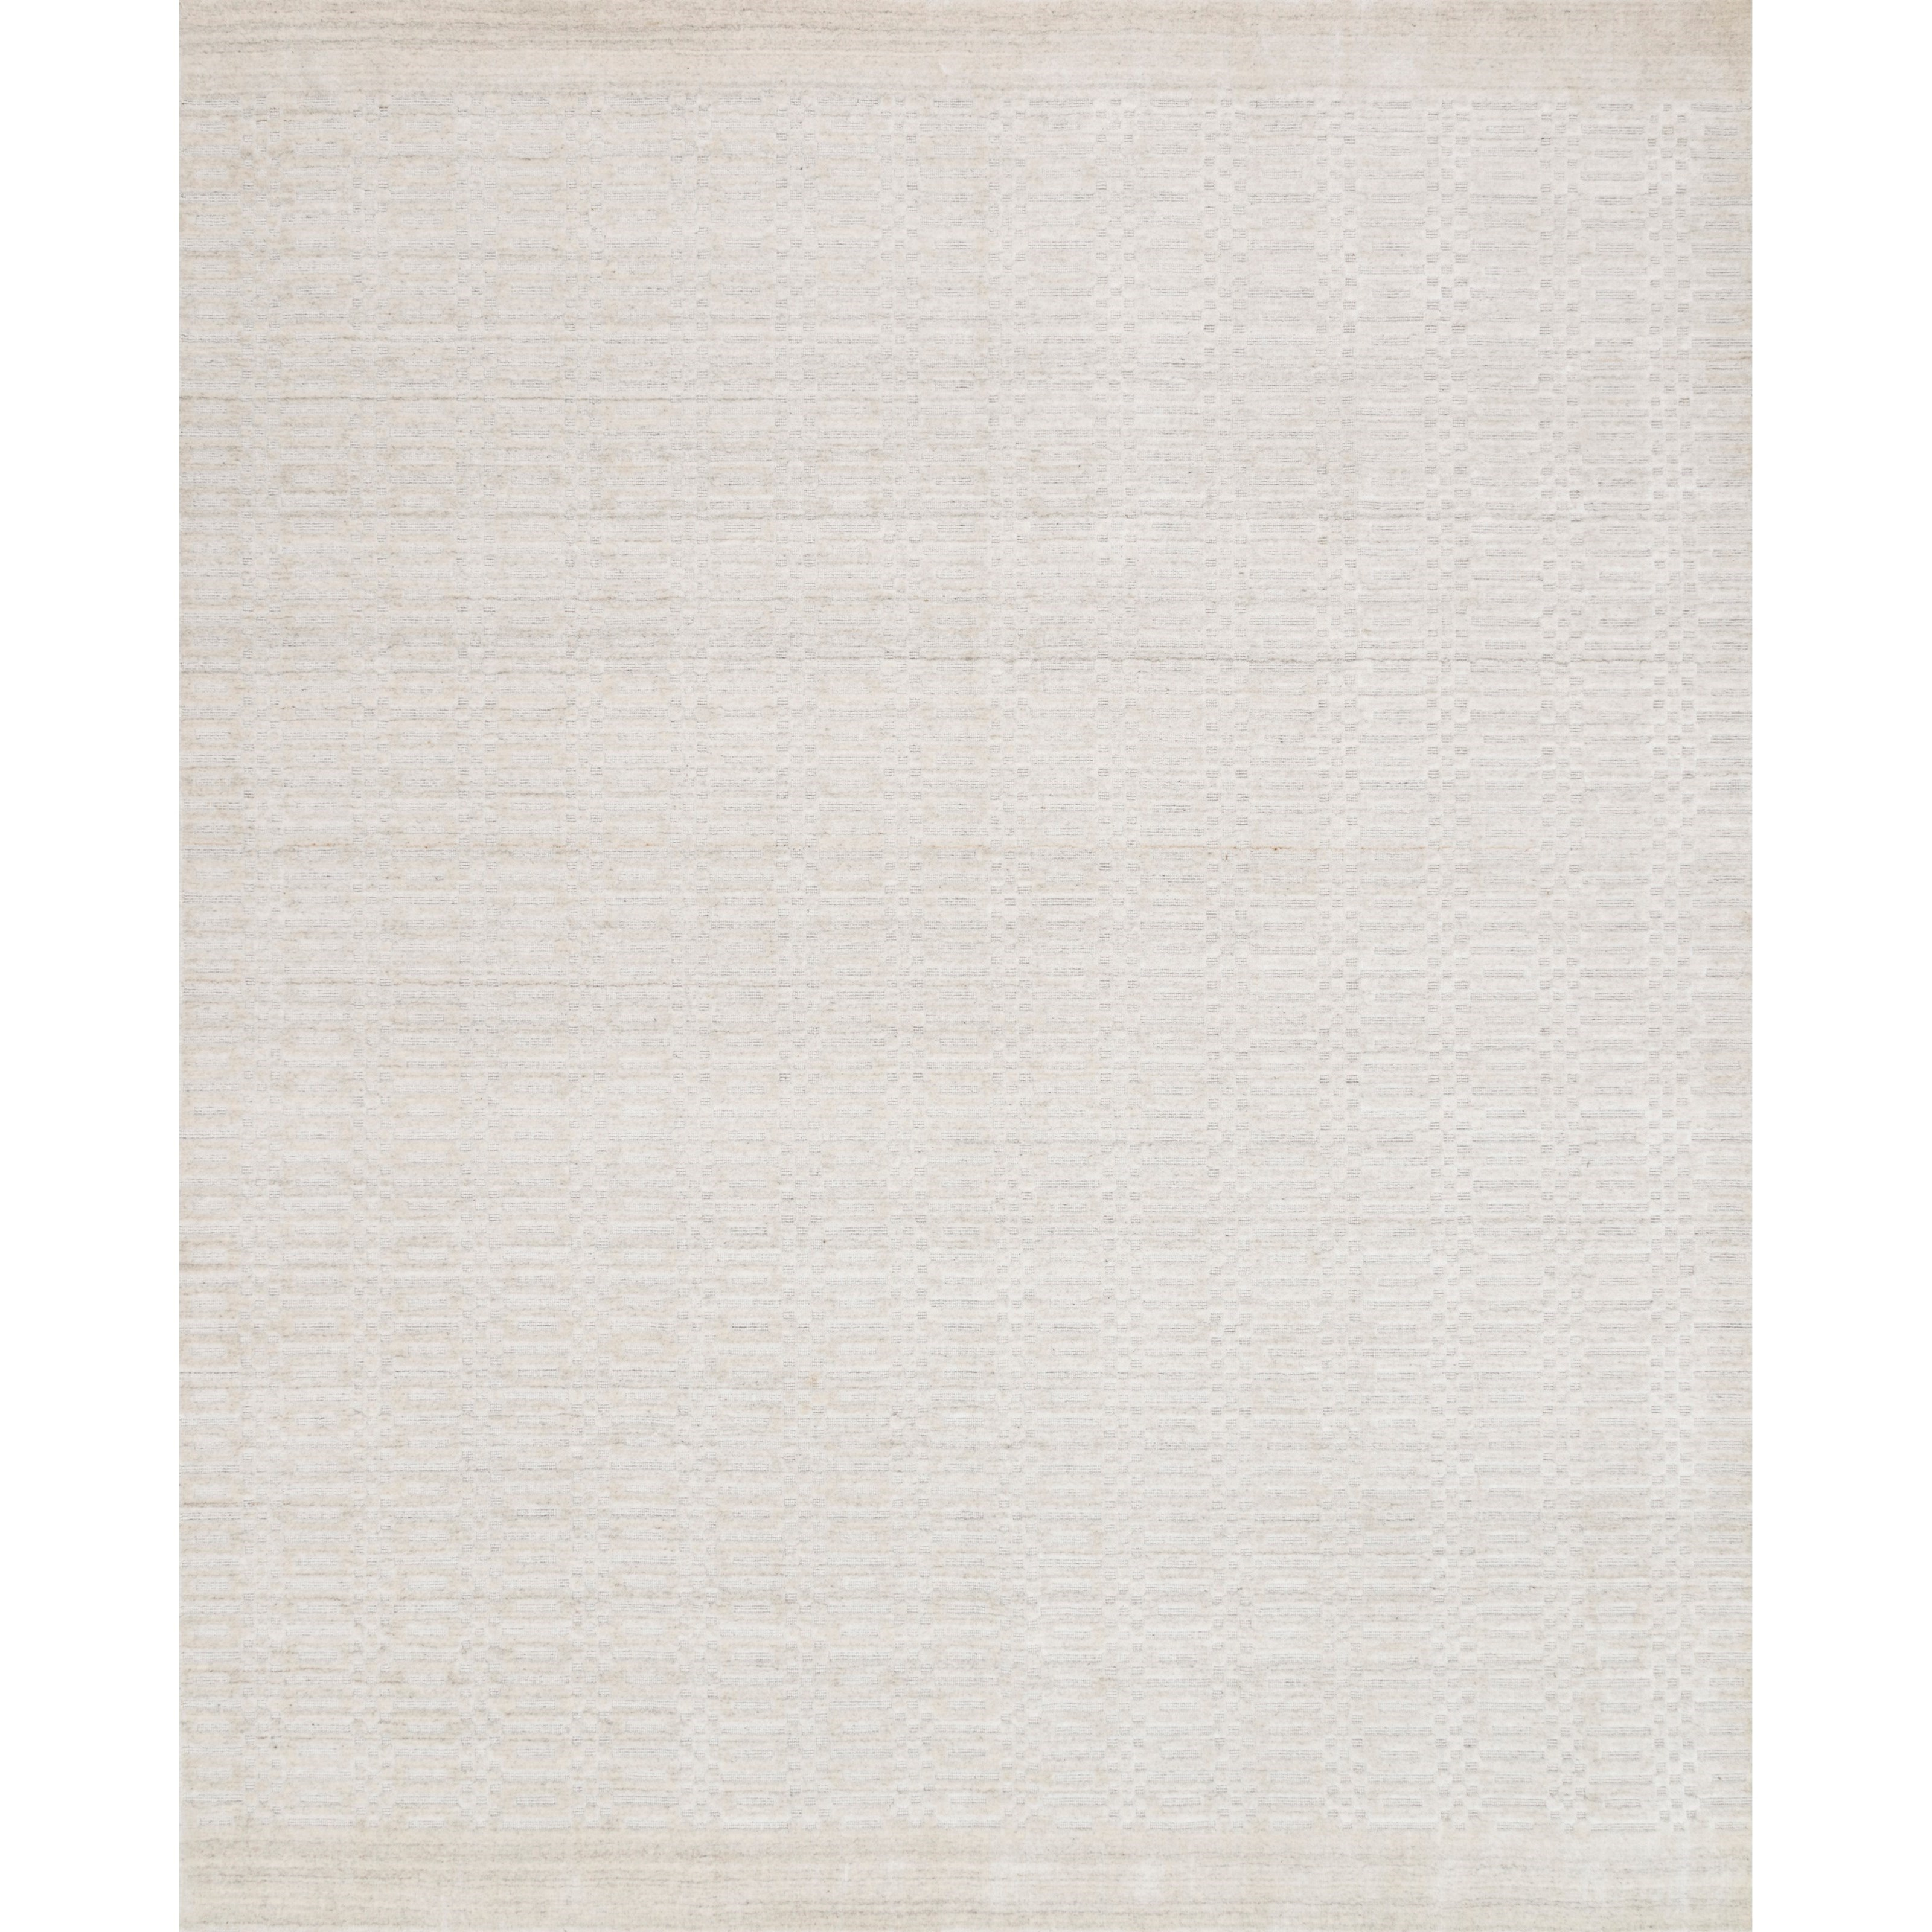 "Lennon 2'0"" x 3'0"" Ivory Rug by Loloi Rugs at Sprintz Furniture"